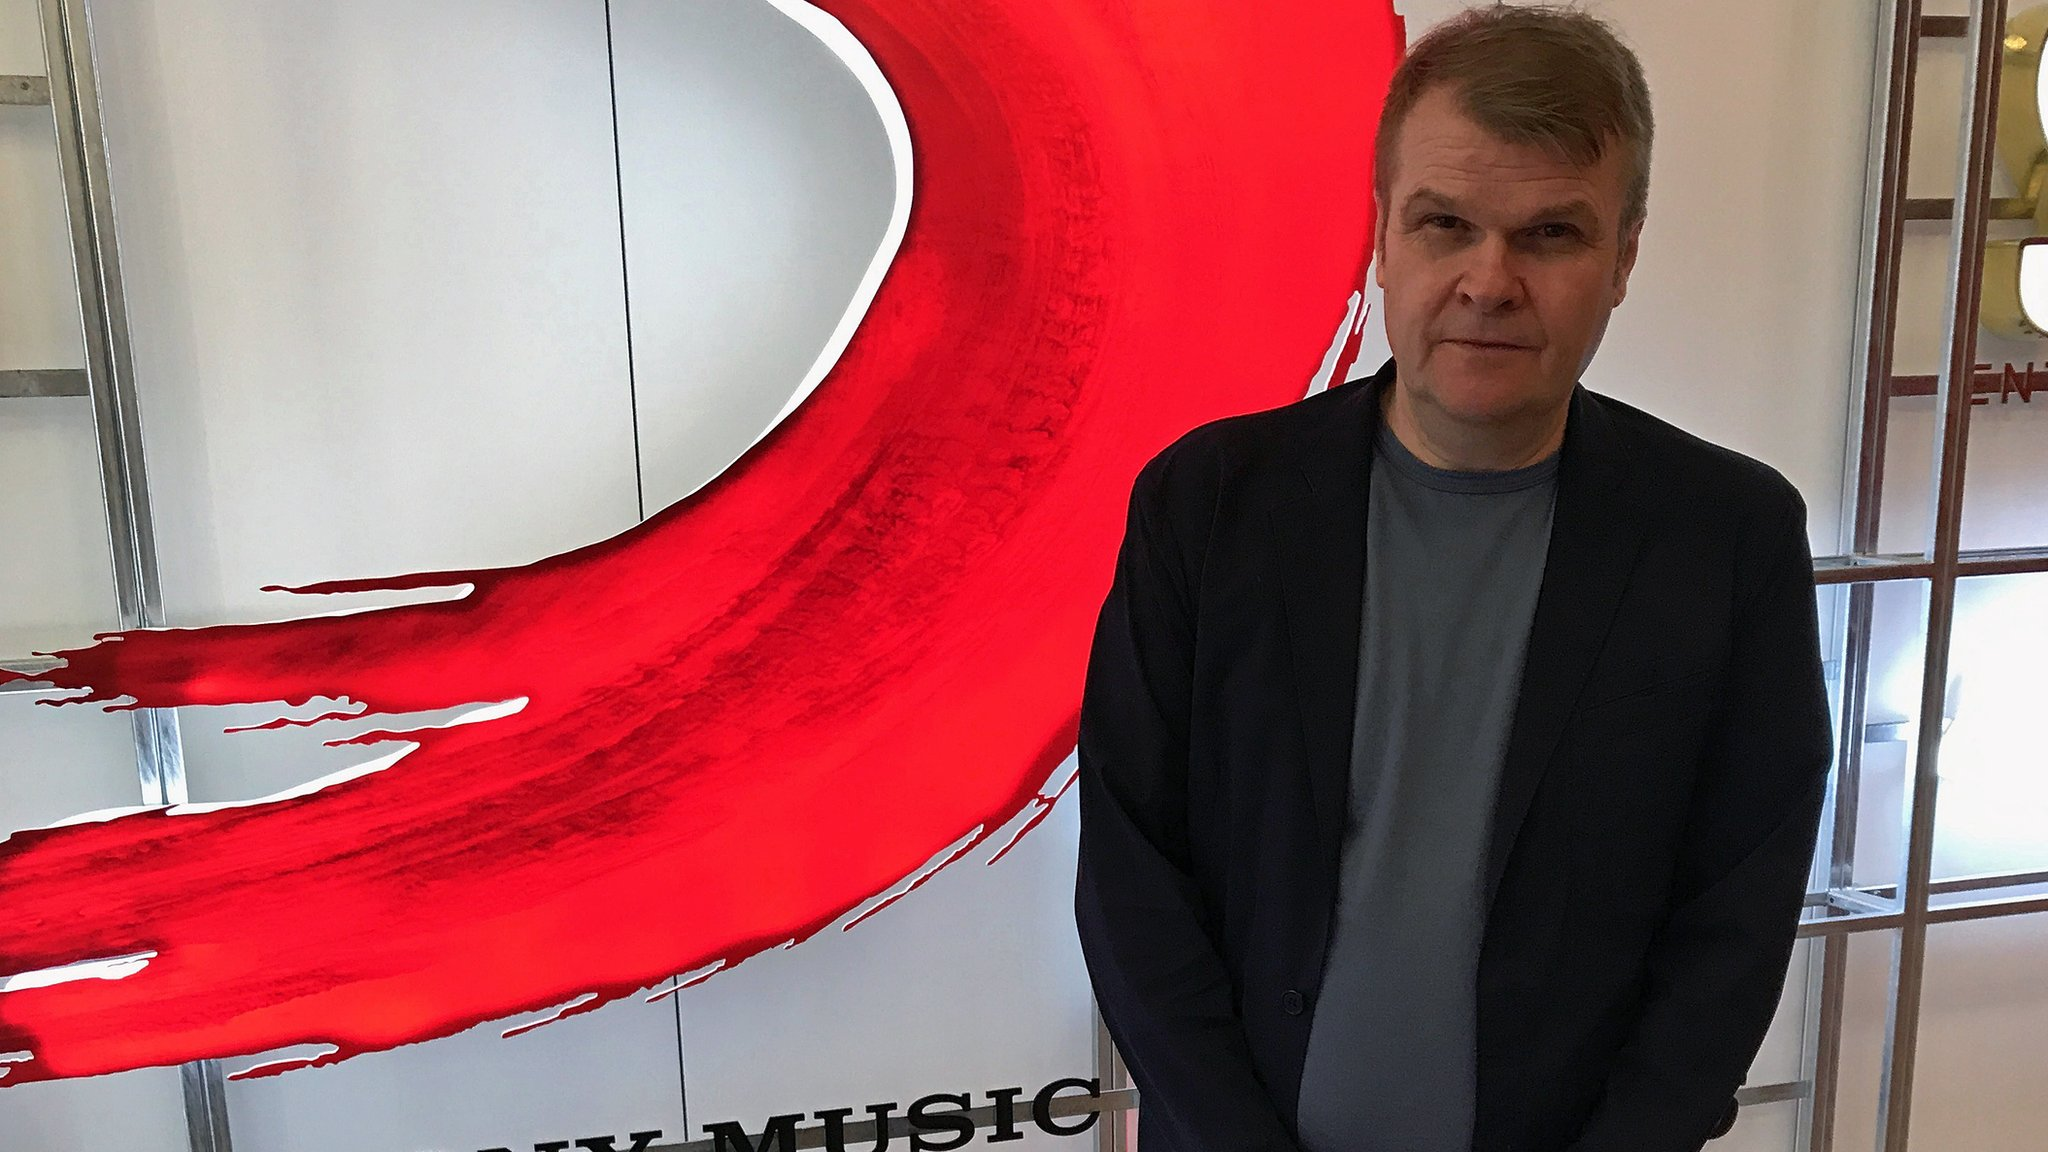 BBC News - Sony music boss: 'You've got to be good at keeping secrets'